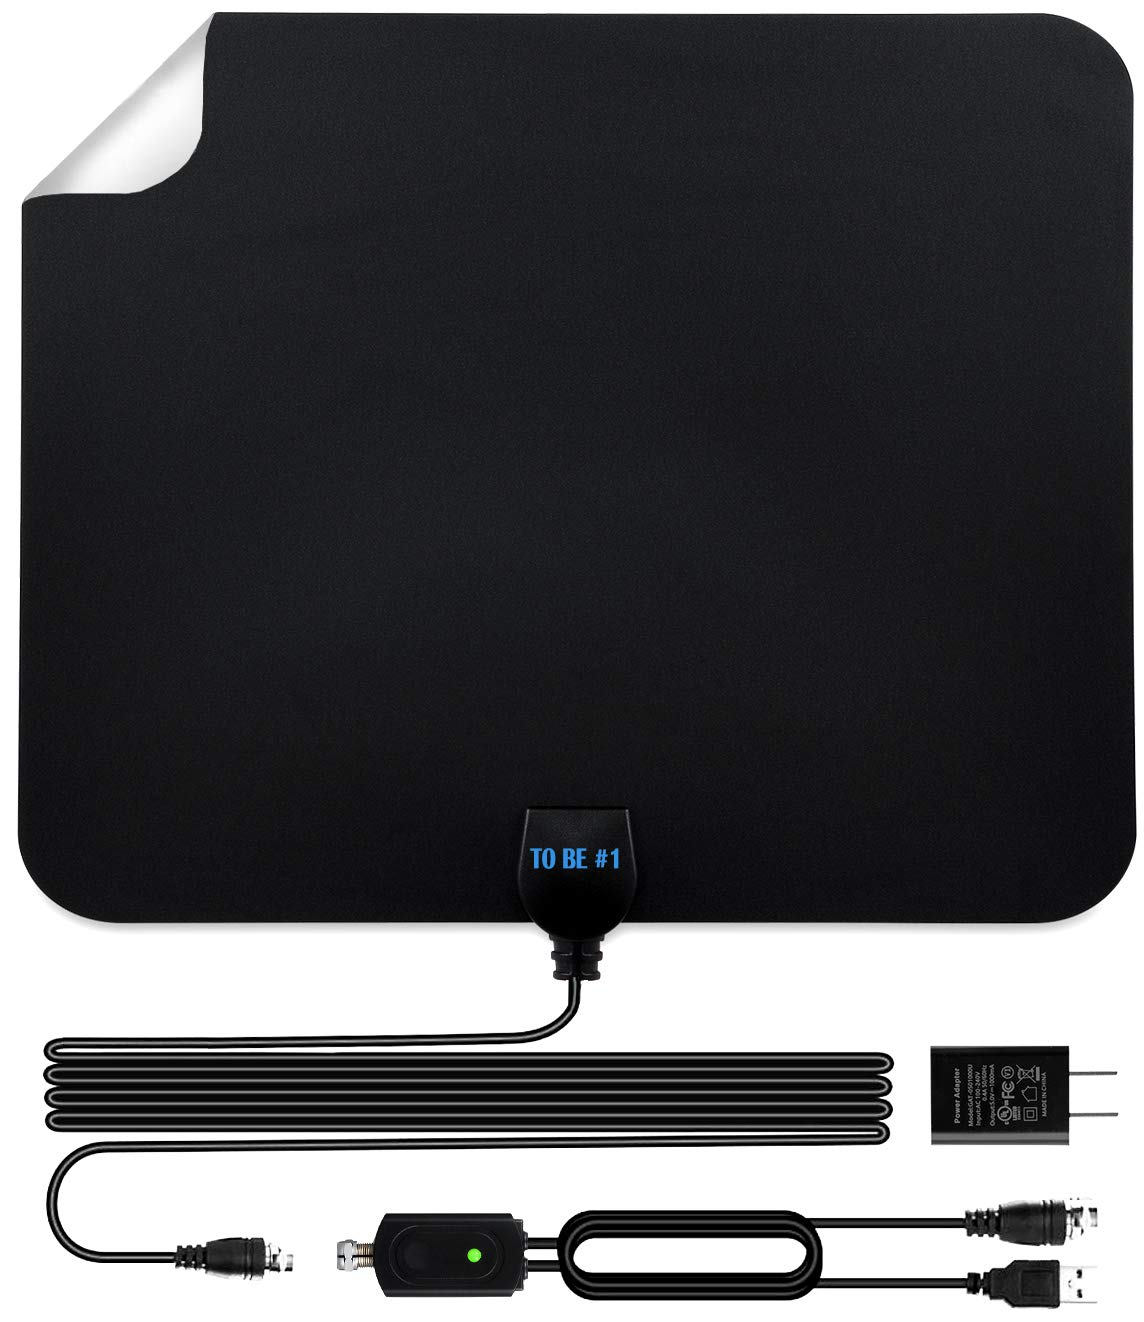 Amplified TV Antennas for Digital TV Indoor 2019, 60 to 120 Miles Long Range , HD Digital TV Antennas Supports All TV , 4K, 1080p, Designed in USA.